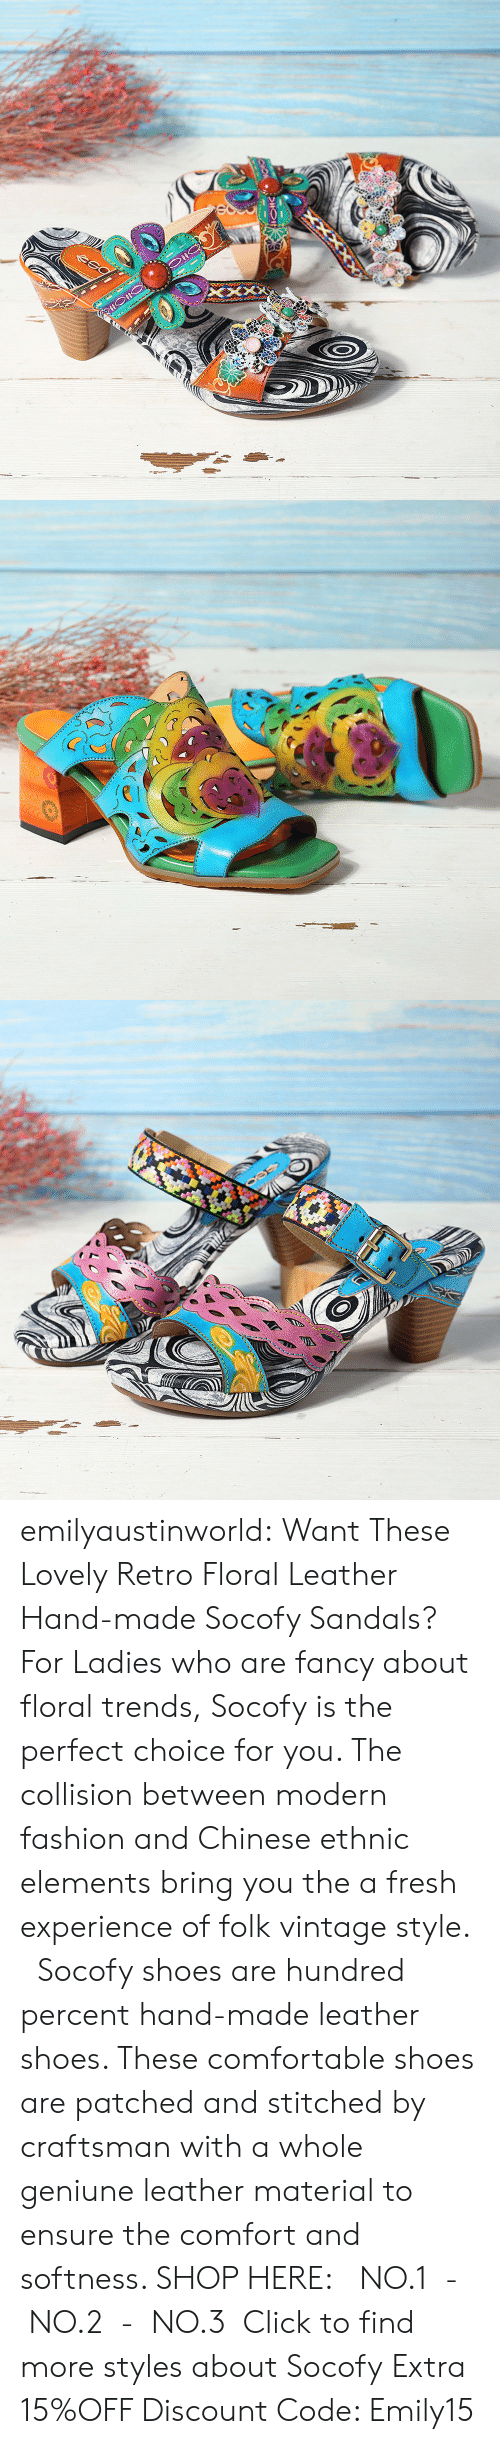 folk: emilyaustinworld: Want These Lovely Retro Floral Leather Hand-made Socofy Sandals?  For Ladies who are fancy about floral trends, Socofy is the perfect choice for you. The collision between modern fashion and Chinese ethnic elements bring you the a fresh experience of folk vintage style.   Socofy shoes are hundred percent hand-made leather shoes. These comfortable shoes are patched and stitched by craftsman with a whole geniune leather material to ensure the comfort and softness.  SHOP HERE: NO.1- NO.2- NO.3 Click to find more styles about Socofy Extra 15%OFF Discount Code: Emily15